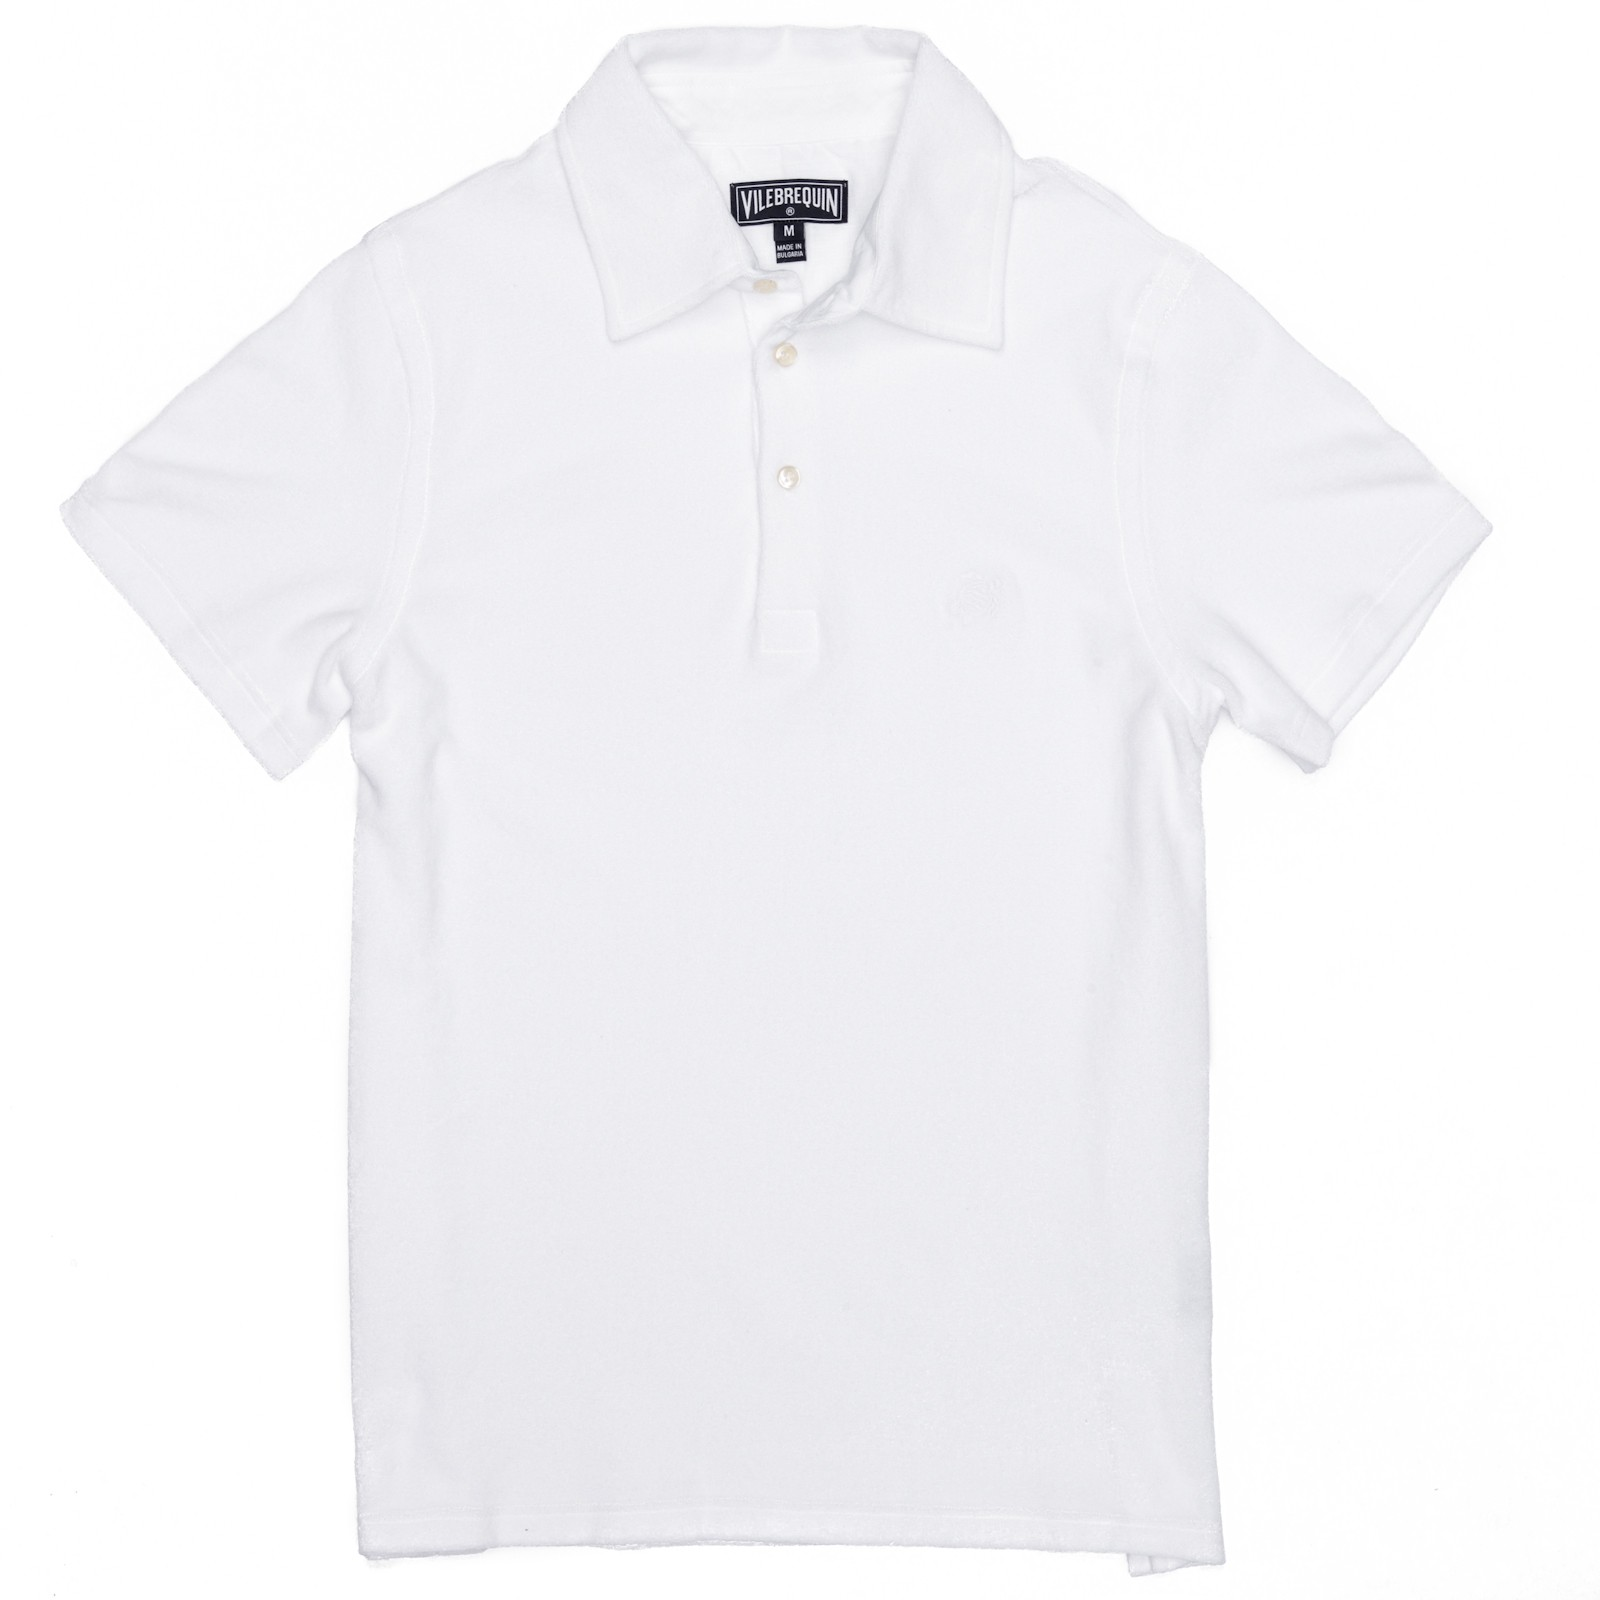 Vilebrequin terry cloth polo shirt in white for men lyst for Terry cloth polo shirt